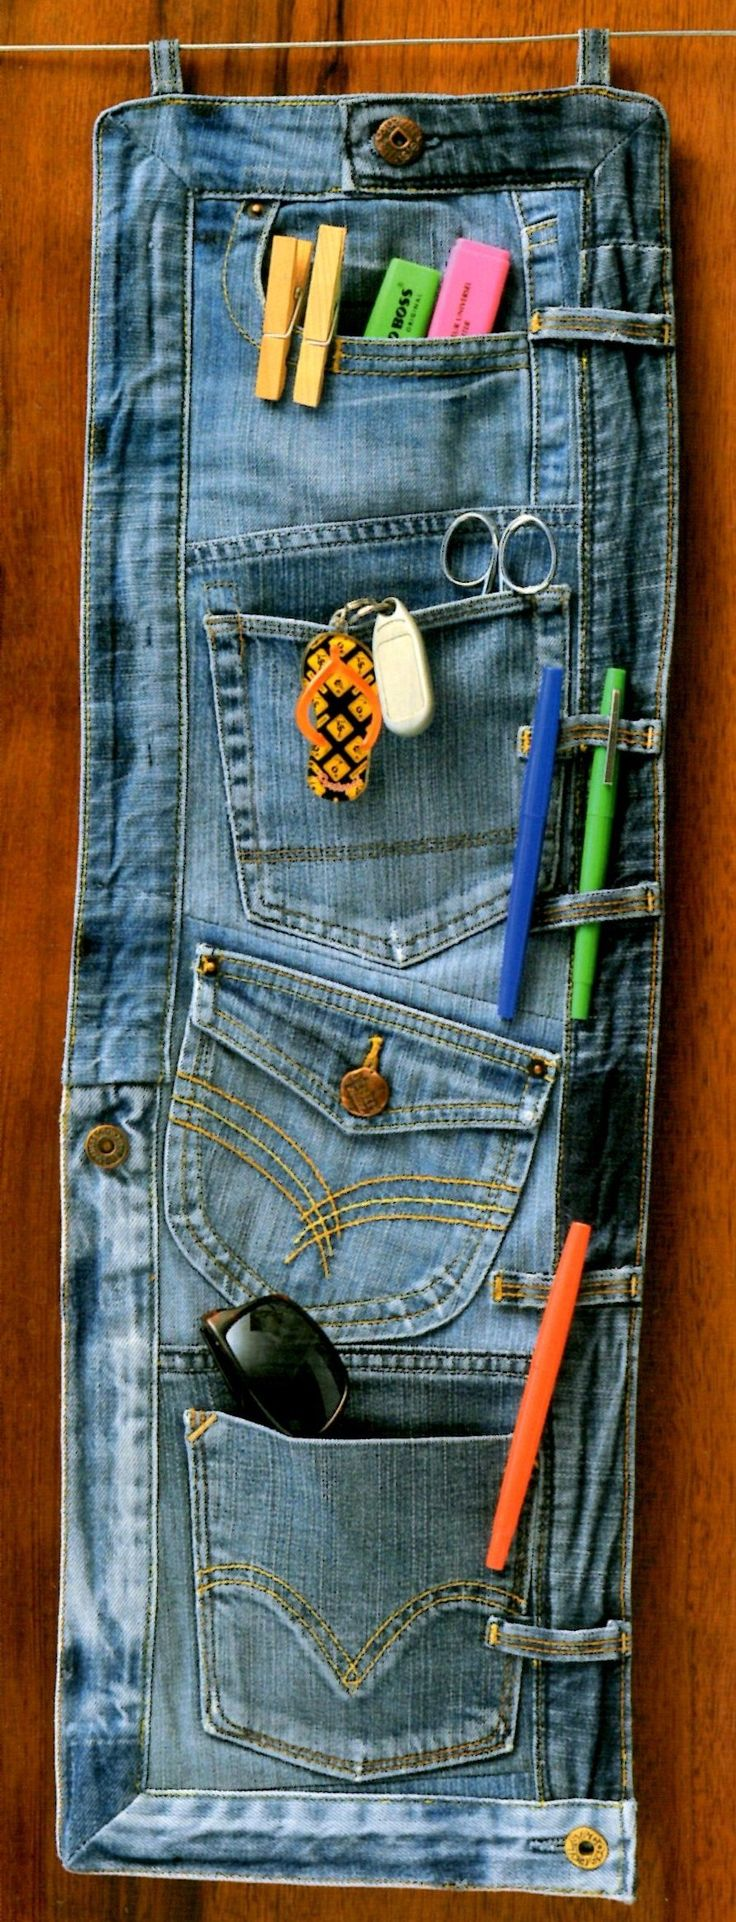 How to recycle an old bluejeans into an organiser